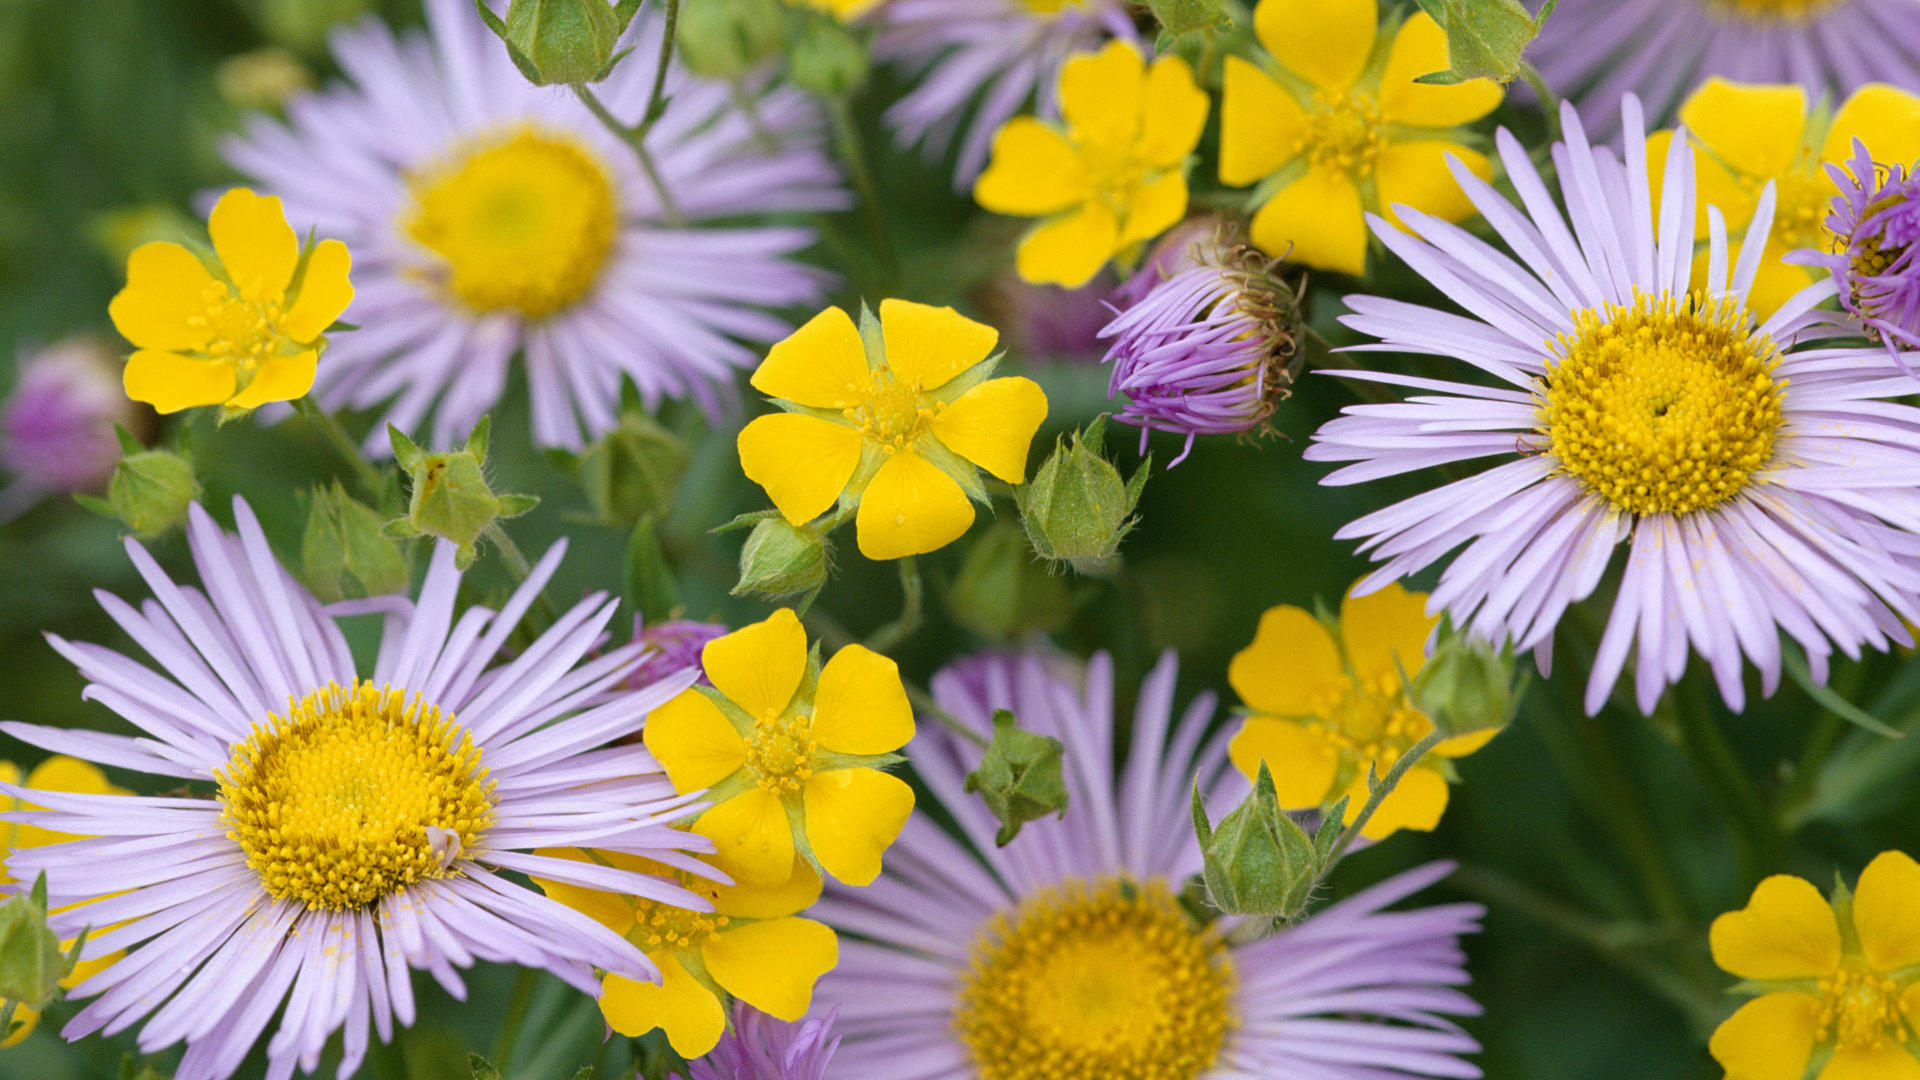 Flowers Hd Images Sf Wallpaper